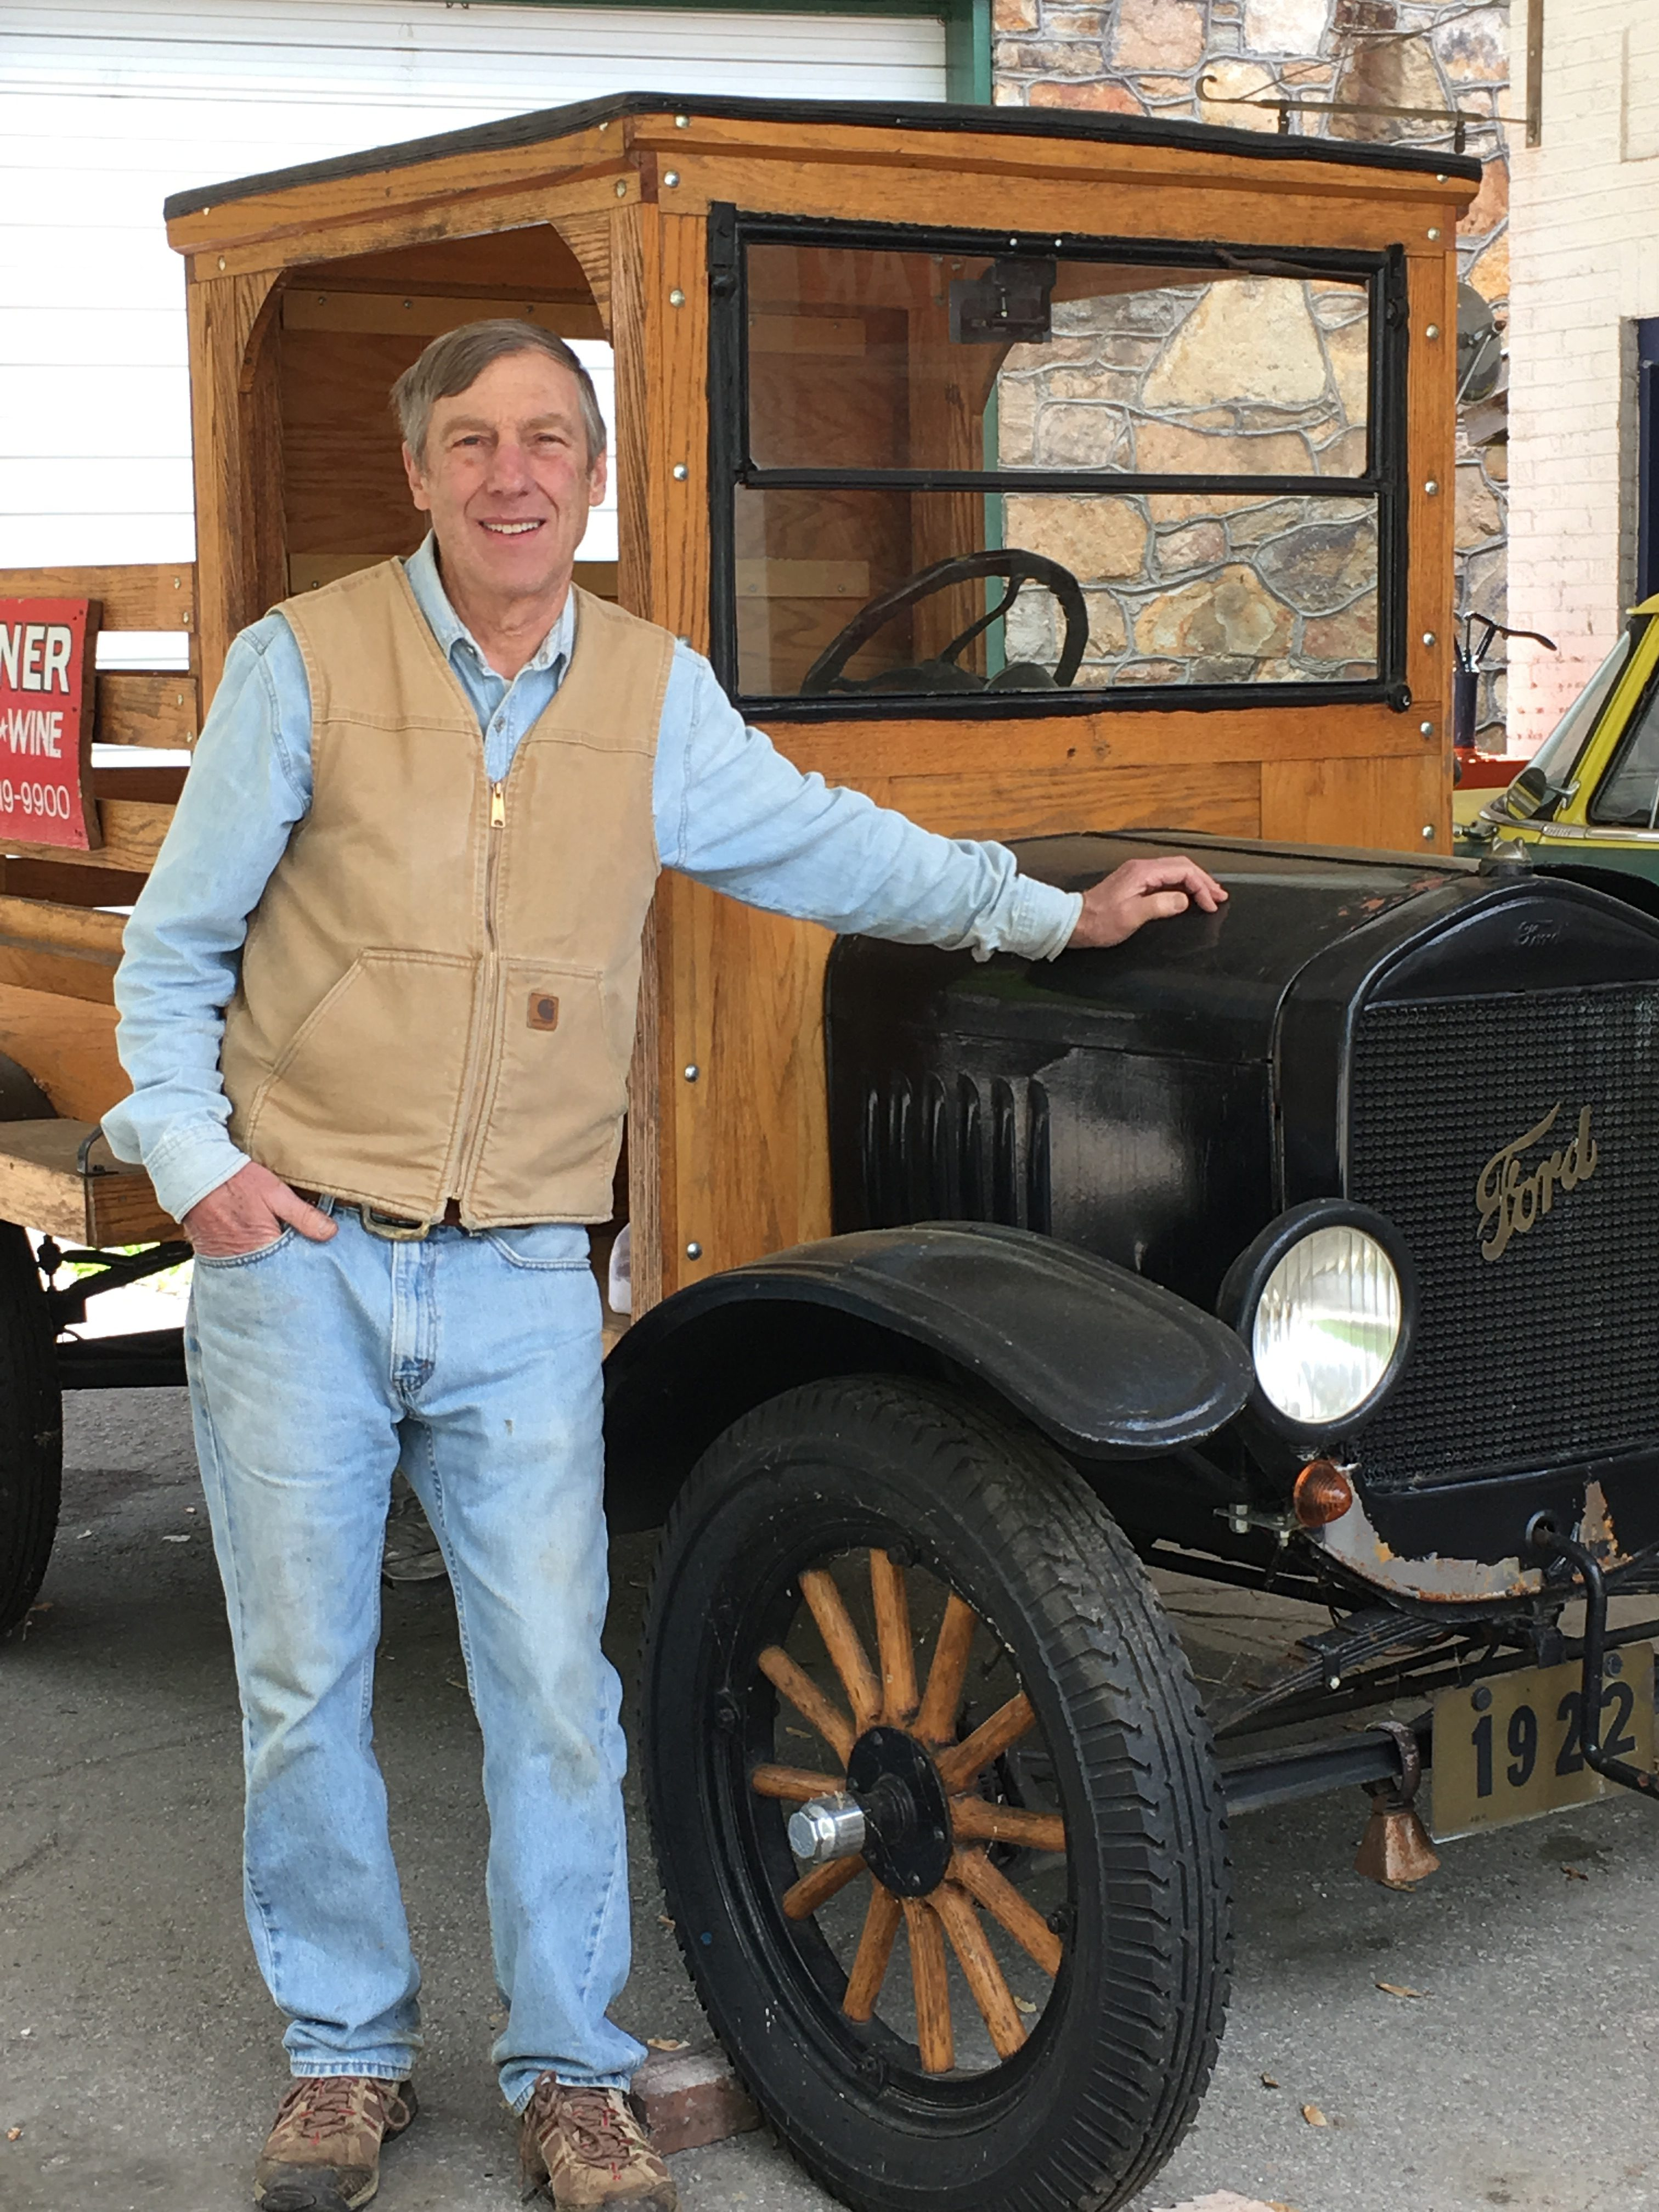 Wayne with Old Truck